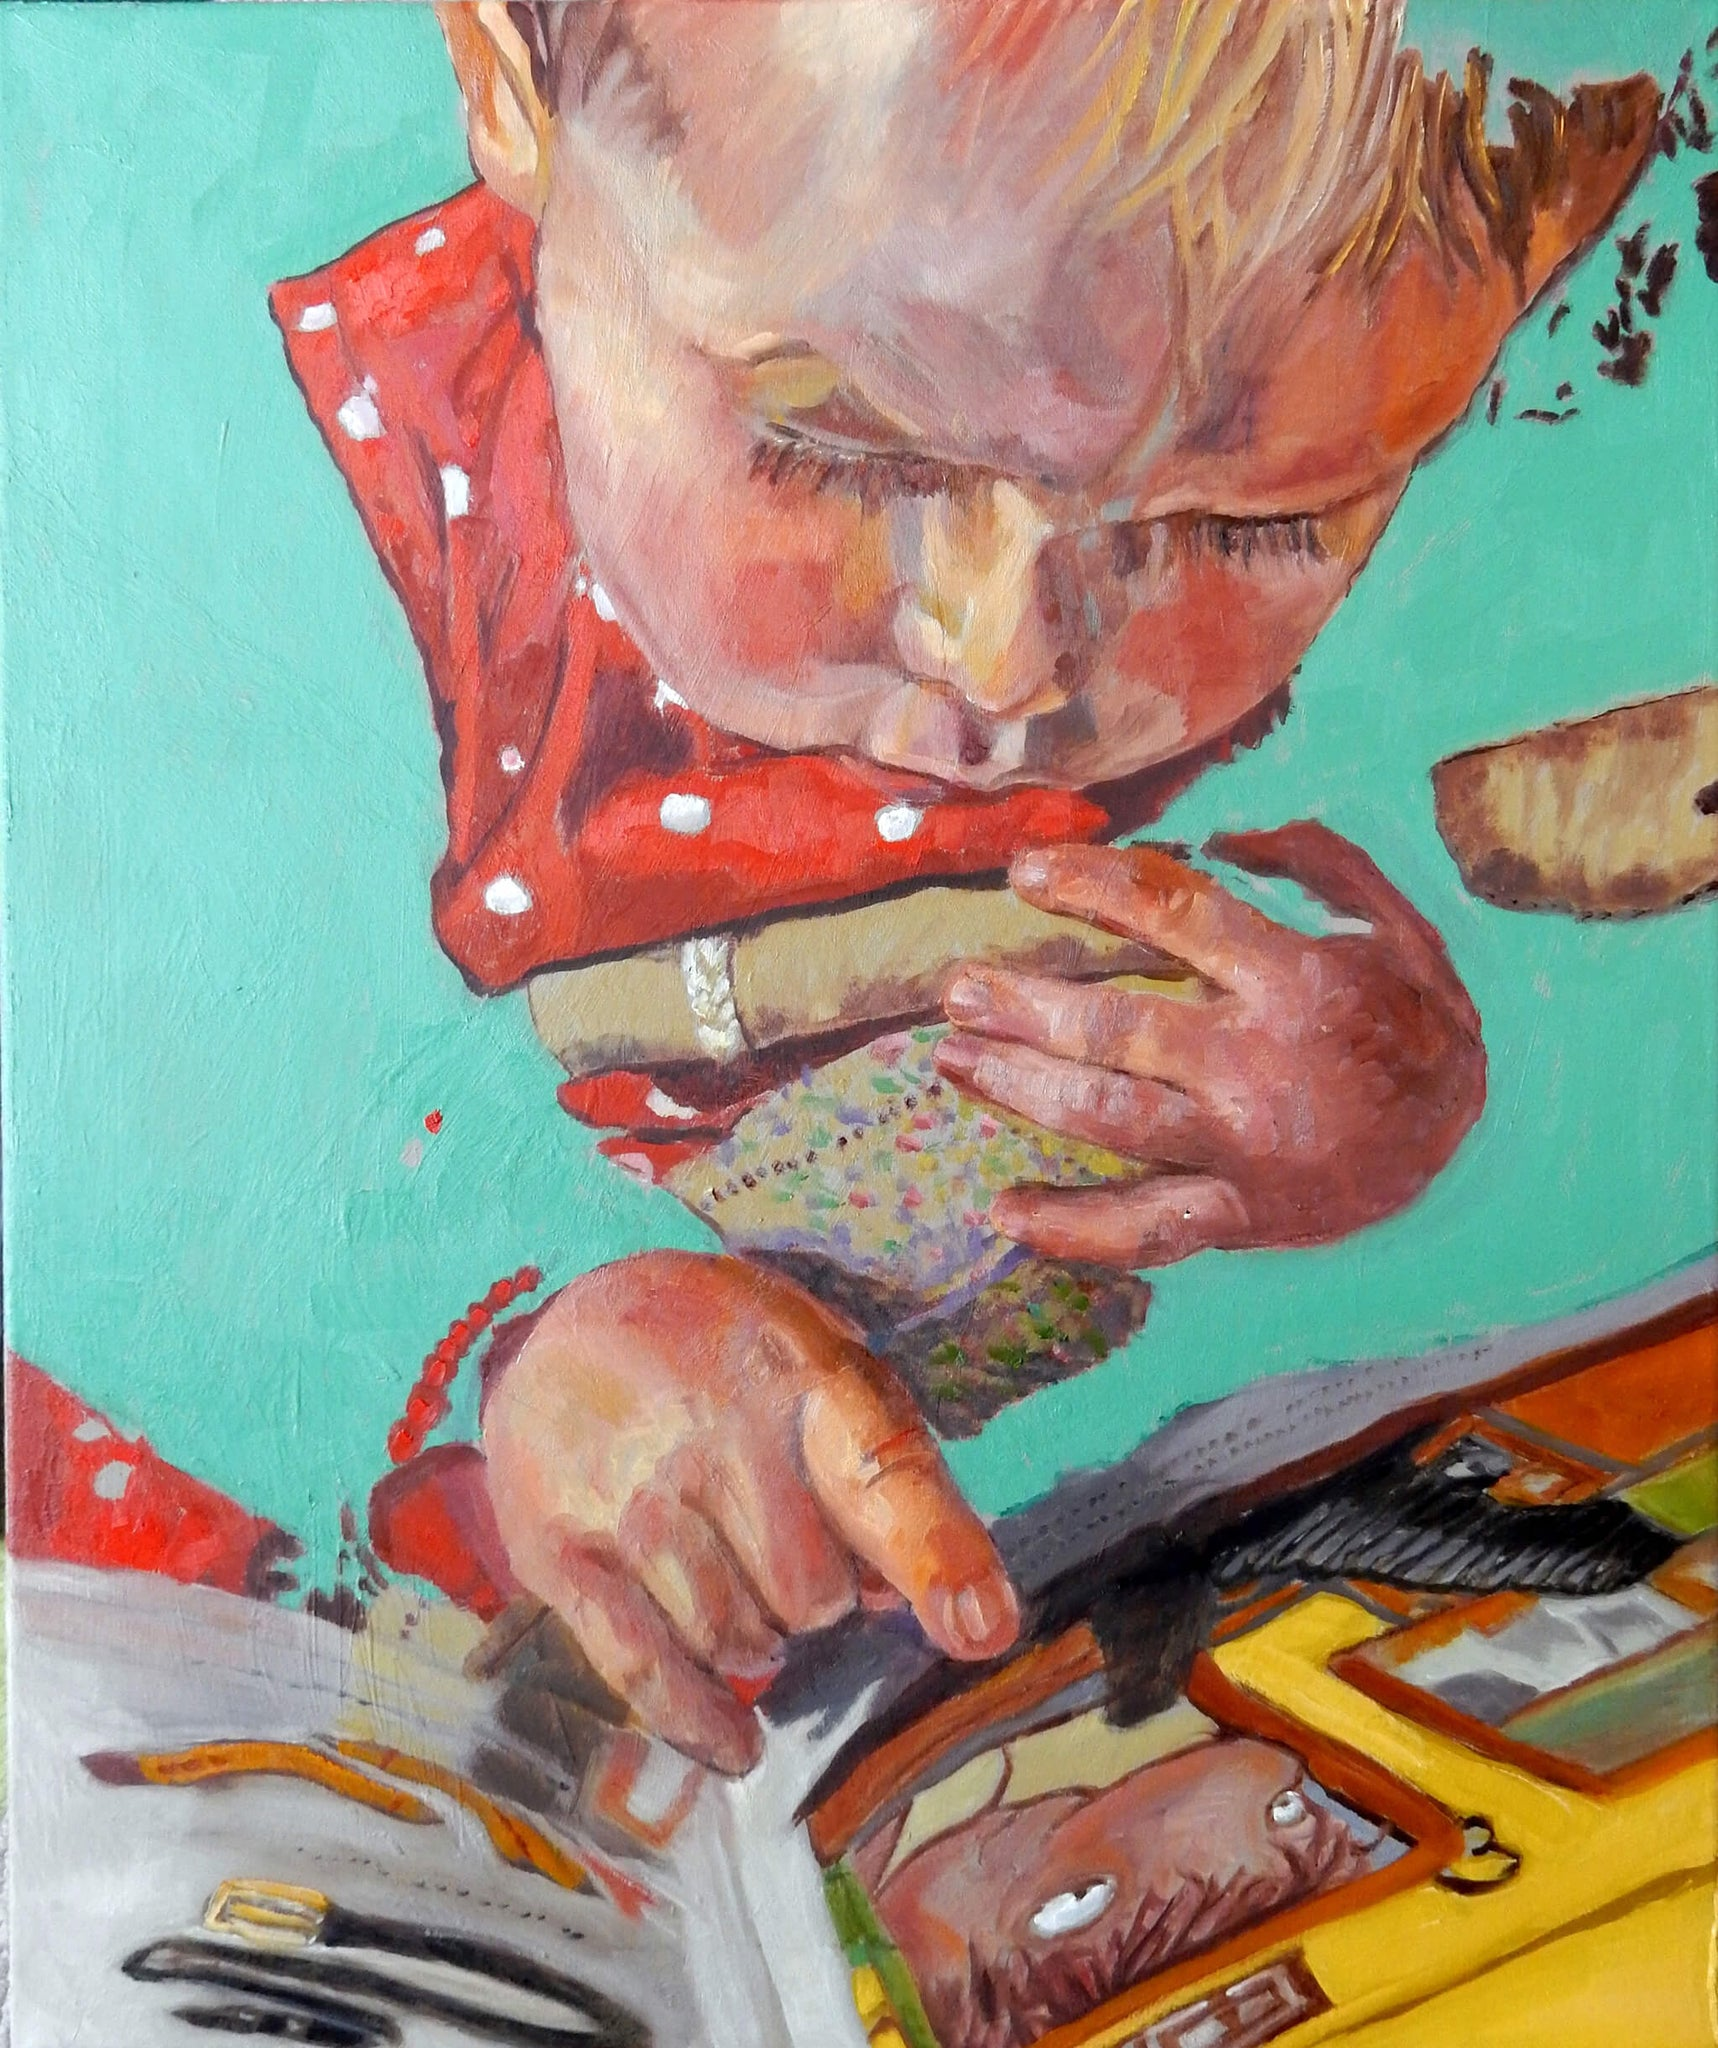 Daisy reading Julia Donaldson's The Smartest Giant in Town oil on canvas portrait artwork by Stella Tooth.